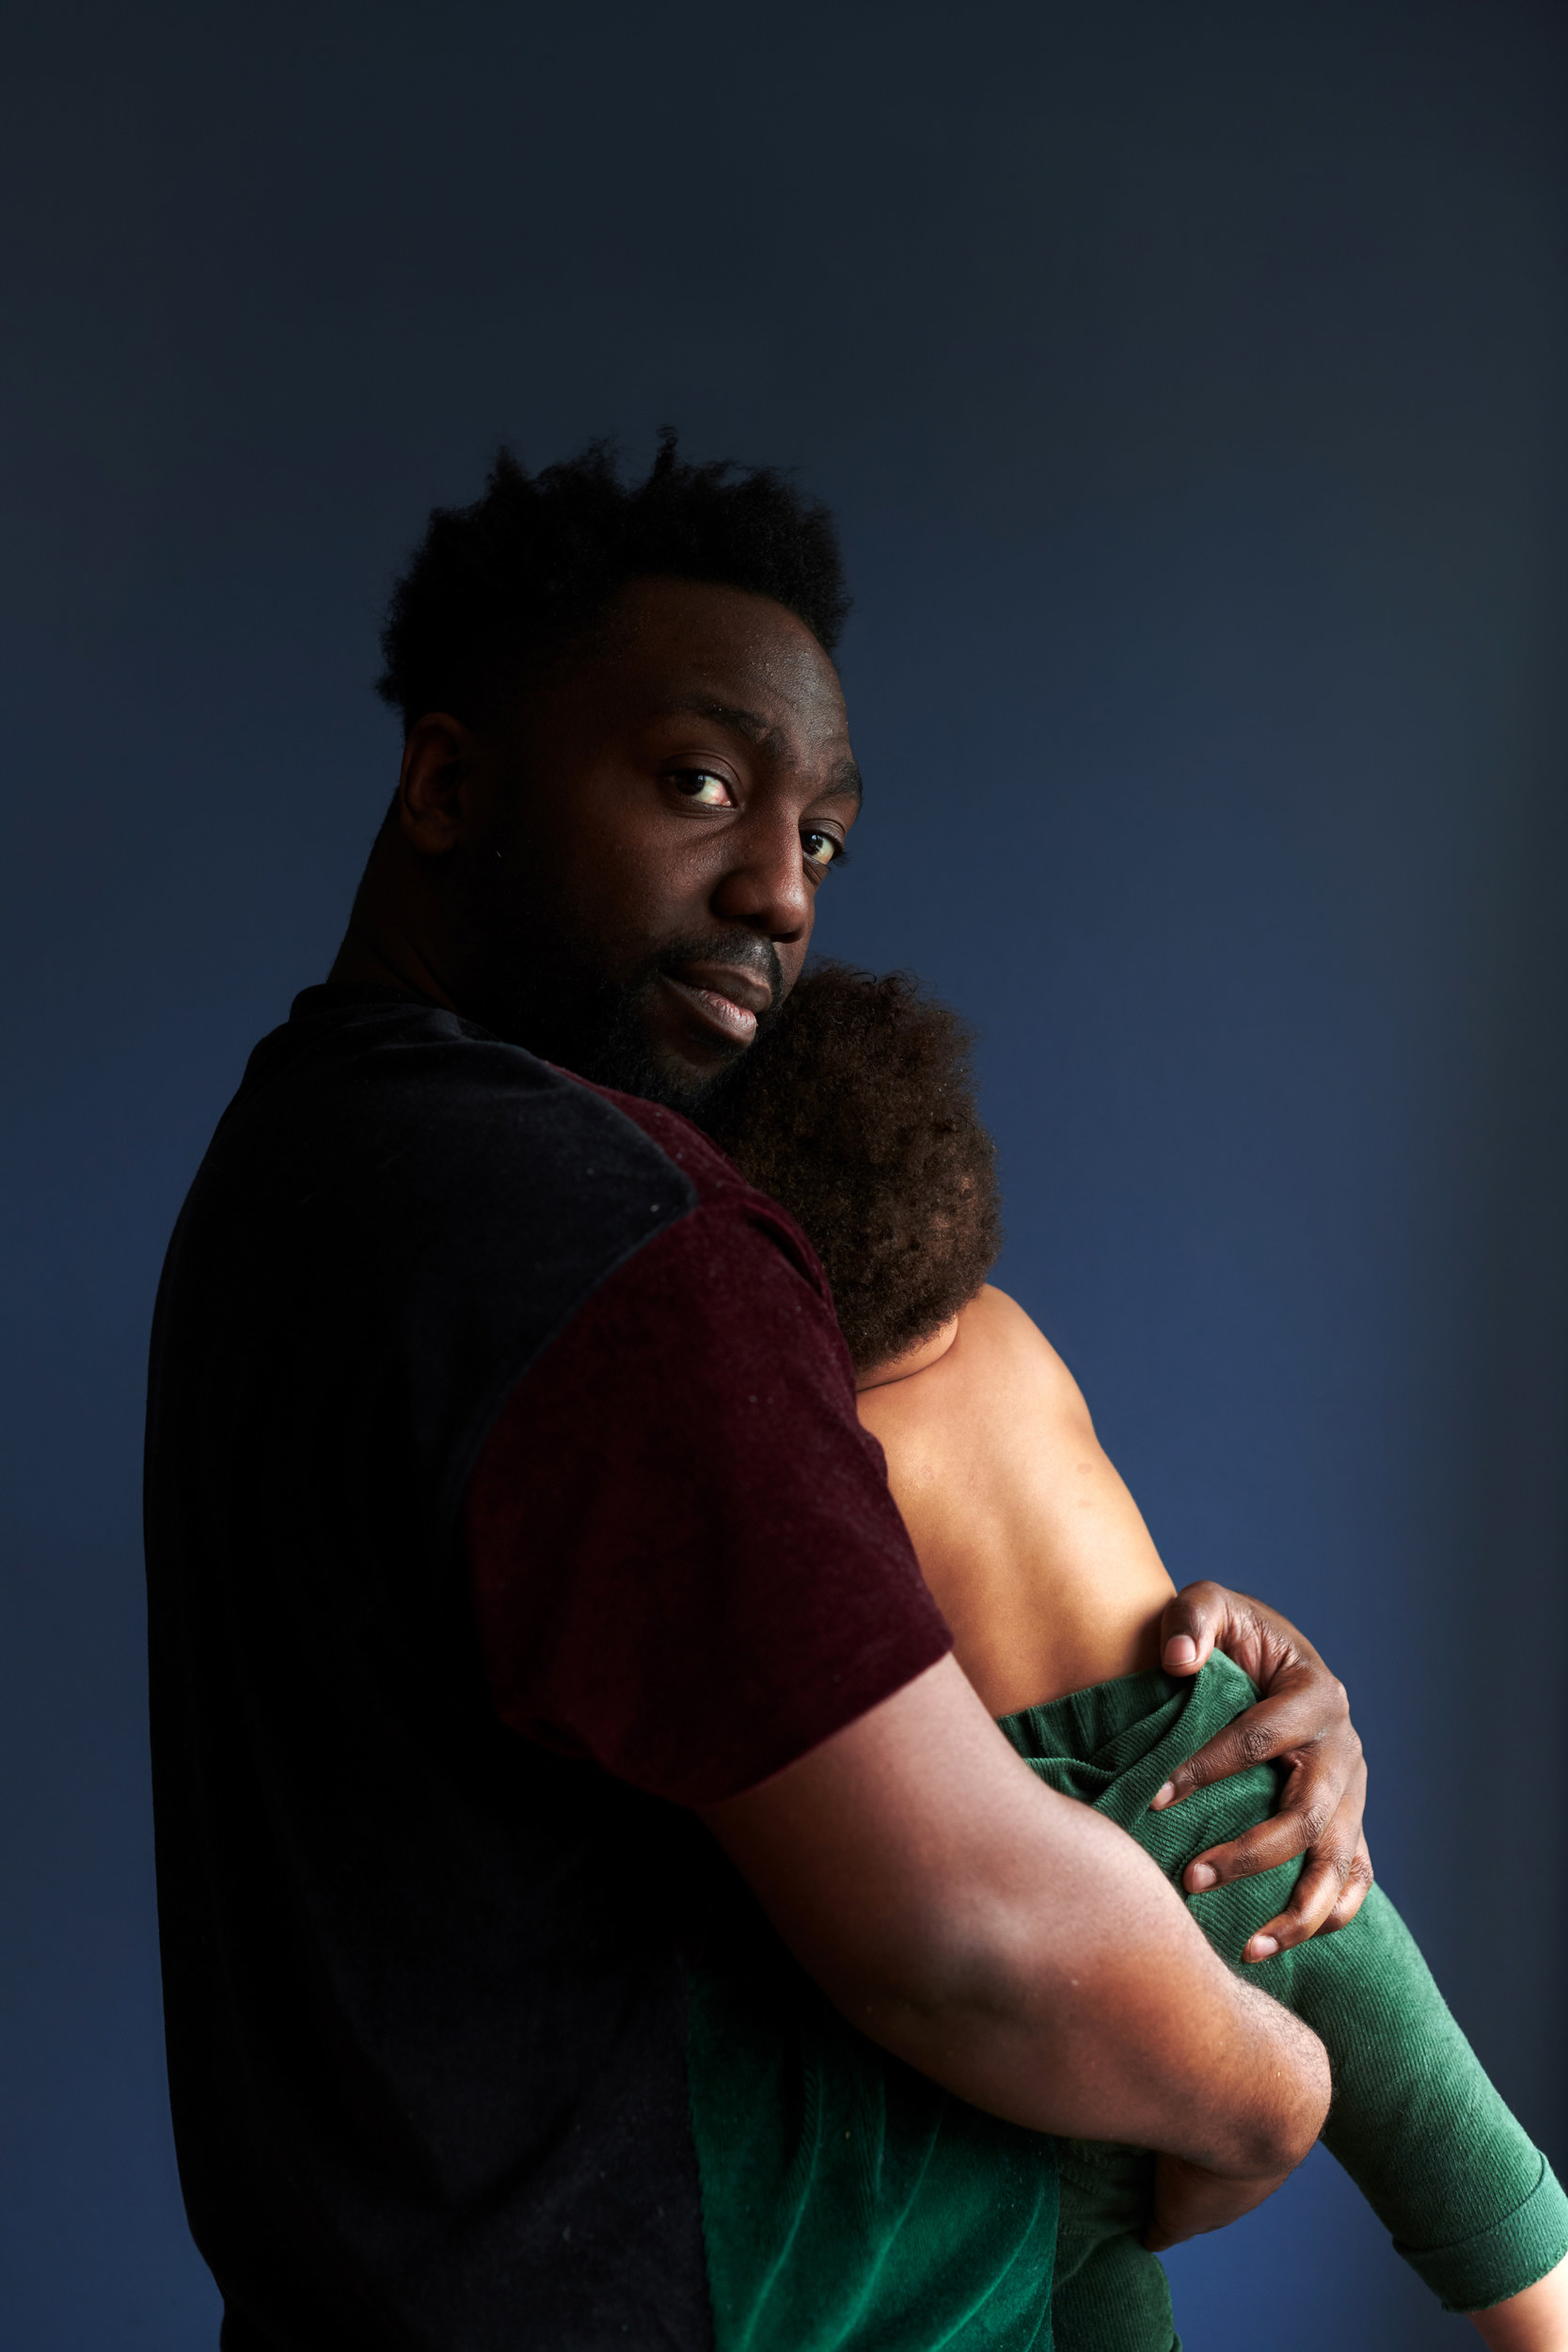 A man looking at the camera holds his young son, who is looking away from the camera